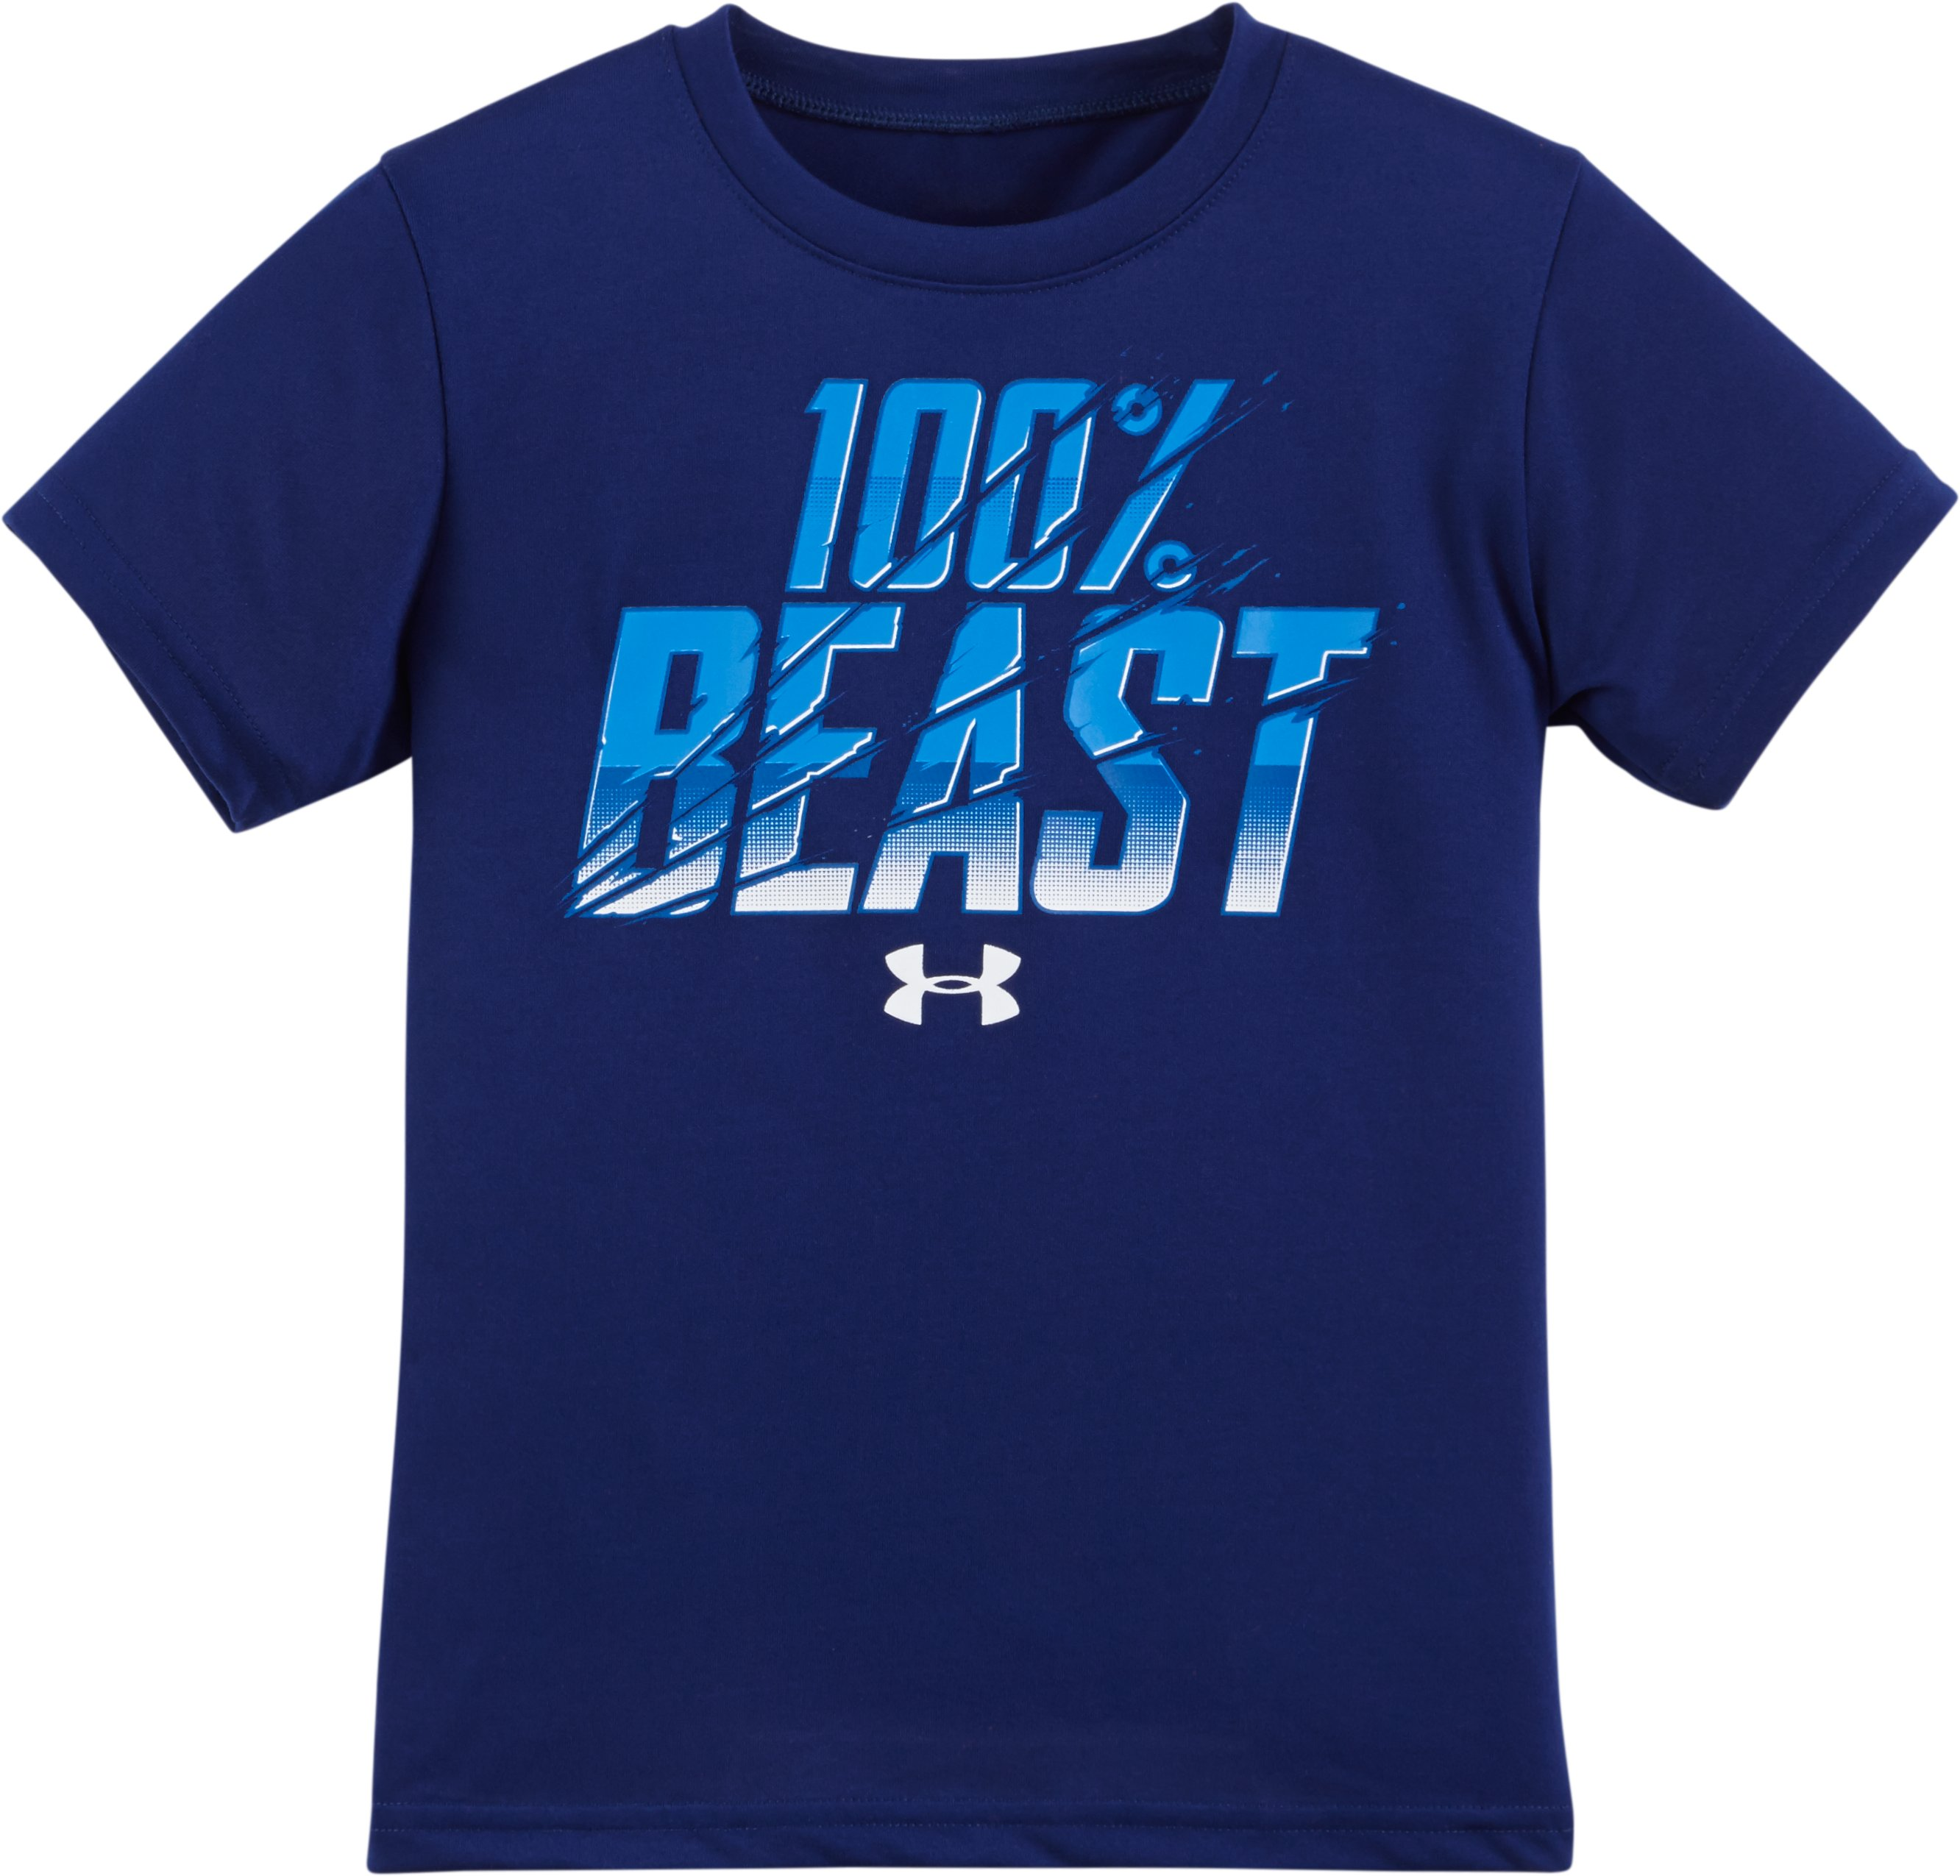 Boys' Toddler UA 100% Beast Short Sleeve T-Shirt, Caspian, Laydown